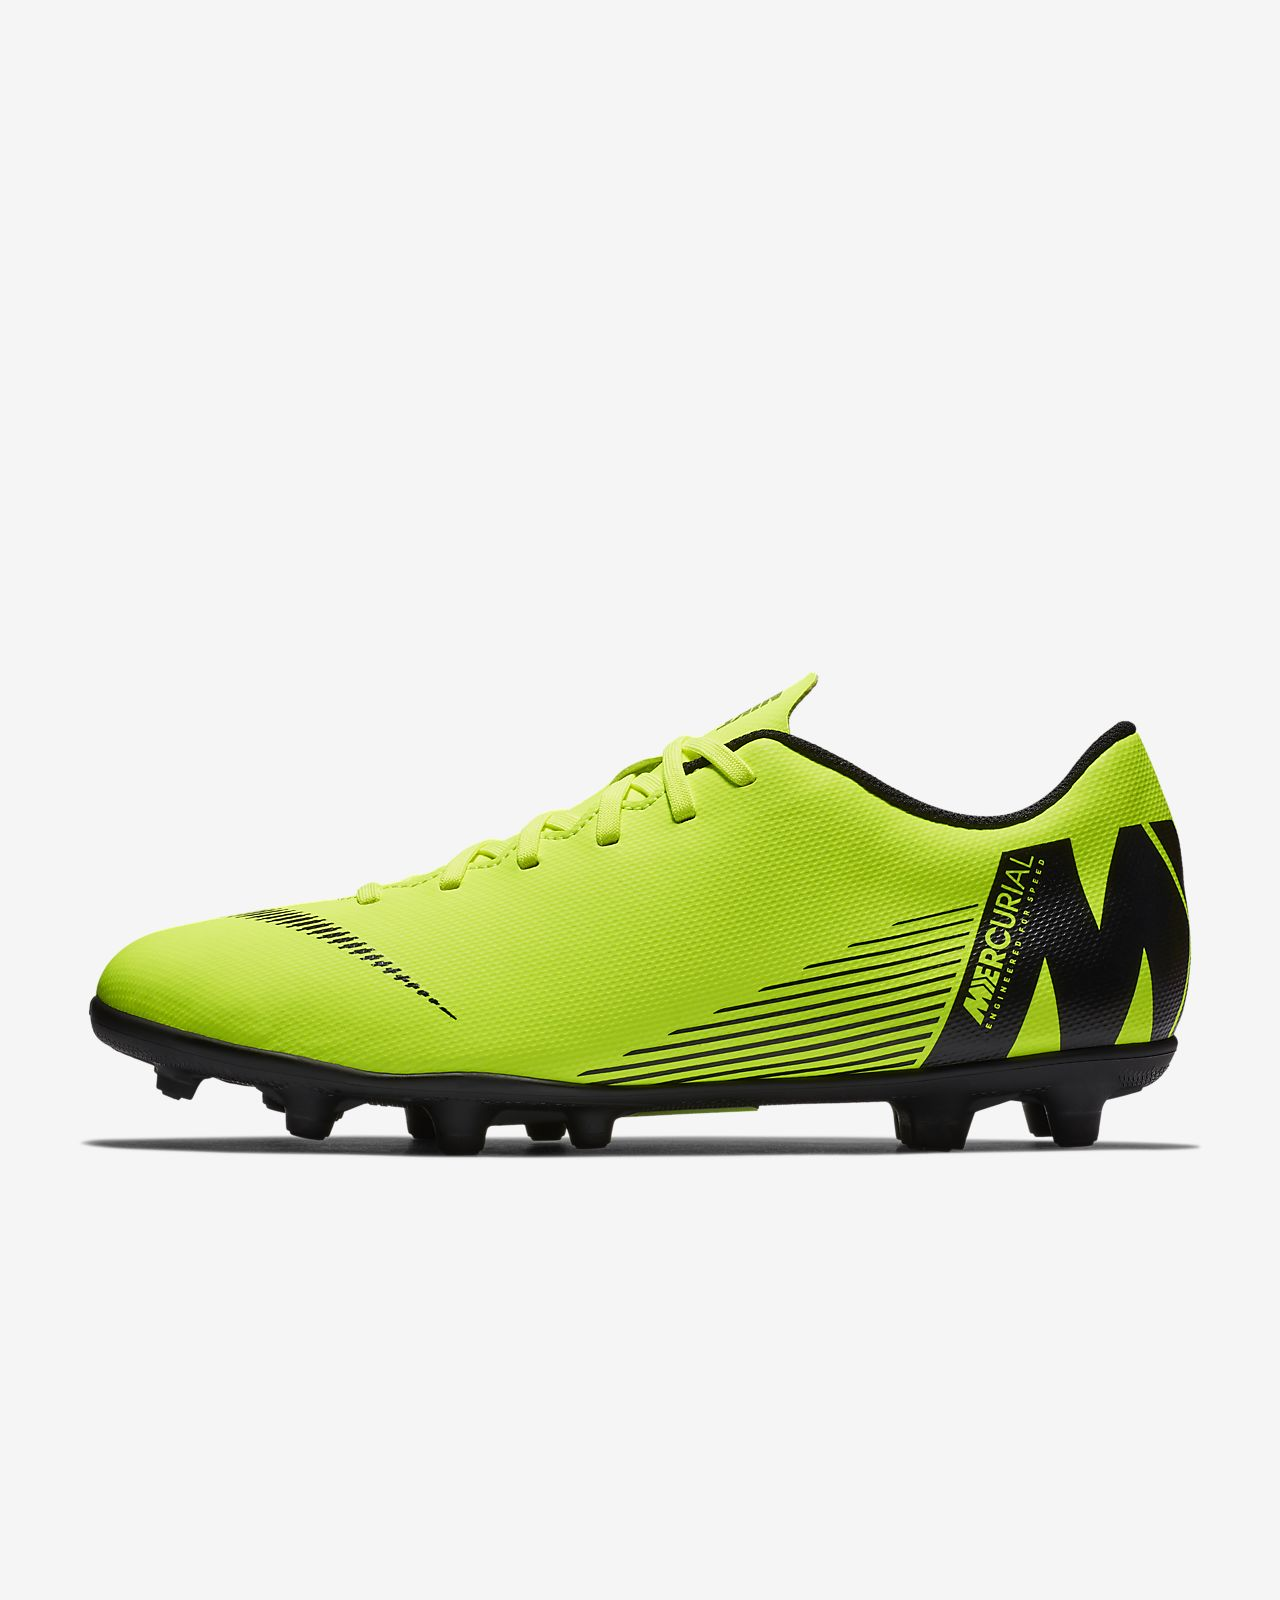 low priced c637c 74bb1 discount nike mercurial vapor xi fg dark lightning pack sort hvit grønn  barn unisportstore.no 19d90 62519  canada nike mercurial vapor xii club  90a34 75dfe